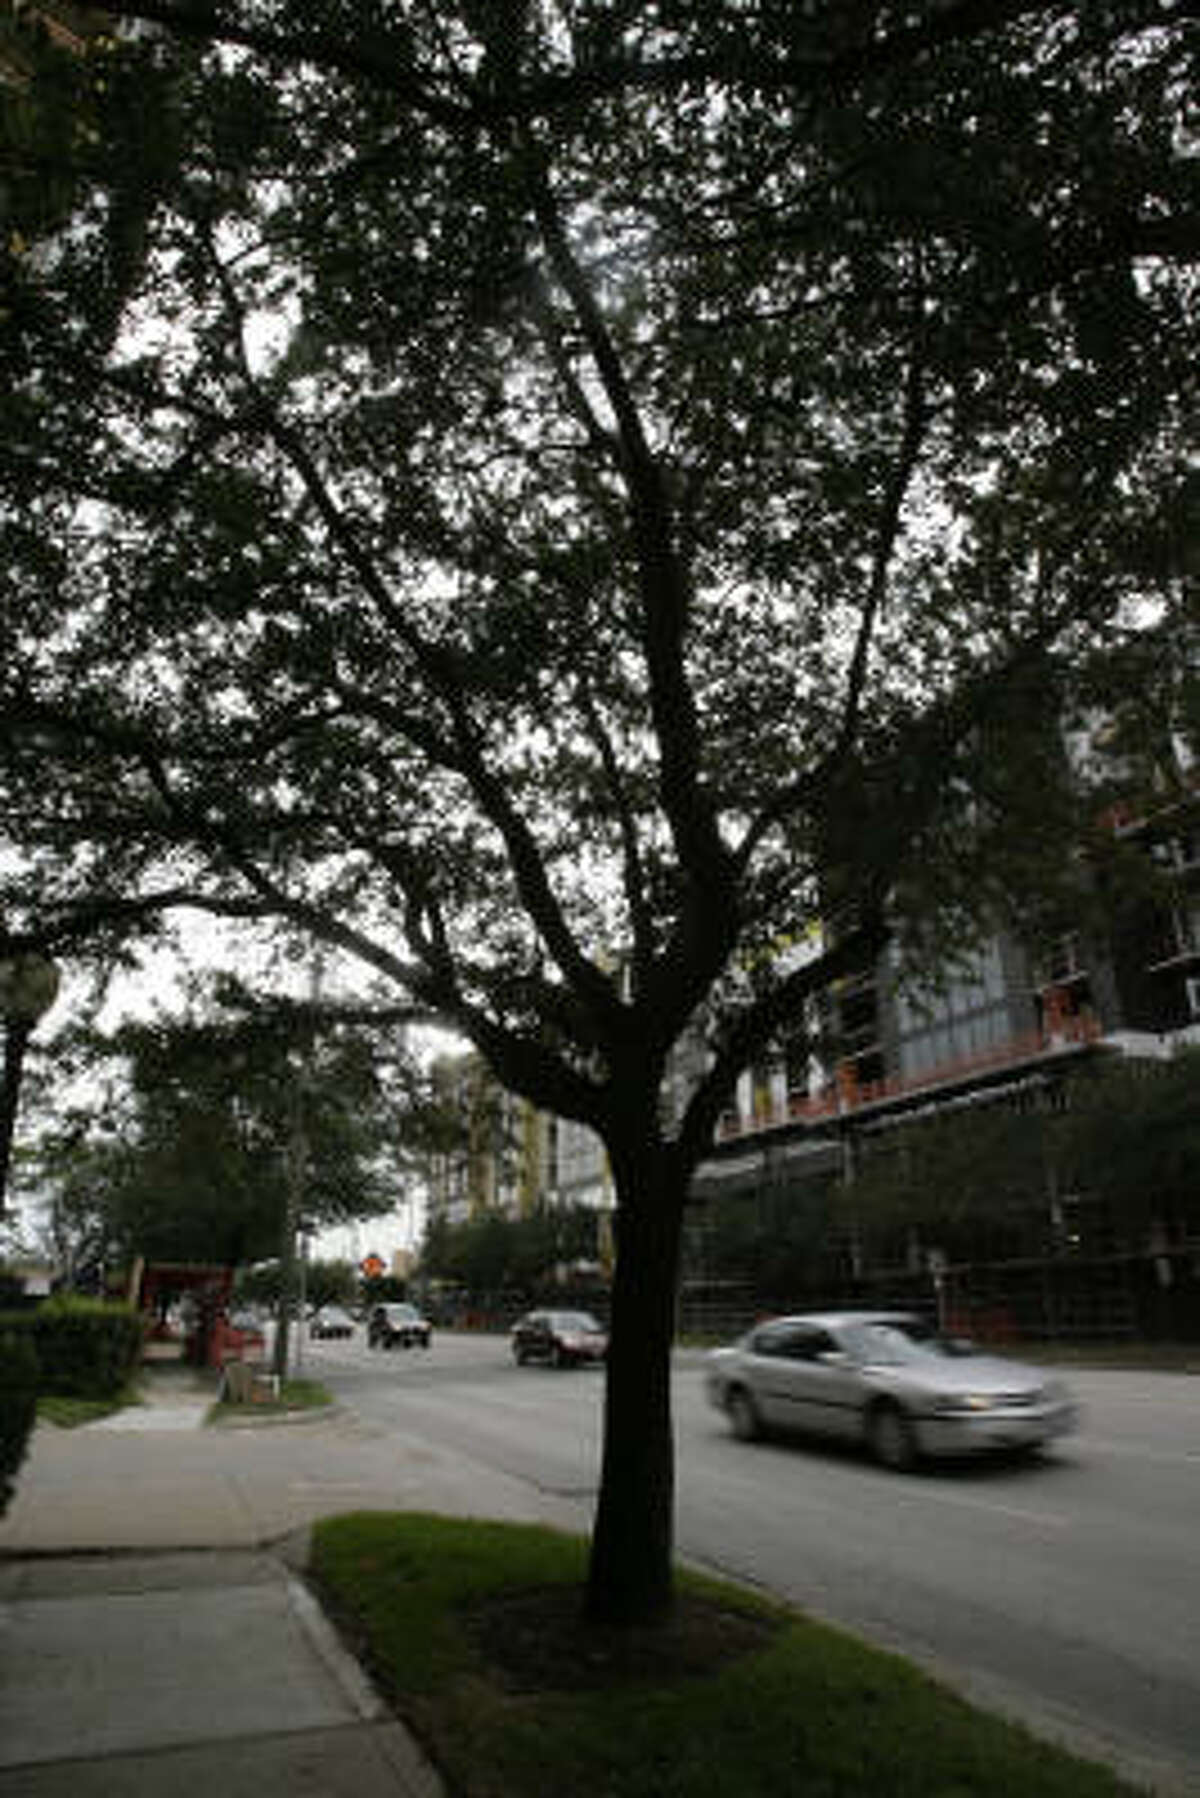 Live oaks along Kirby Drive near Westheimer soon may no longer be part of the scenery. The trees are scheduled to be removed because of construction.